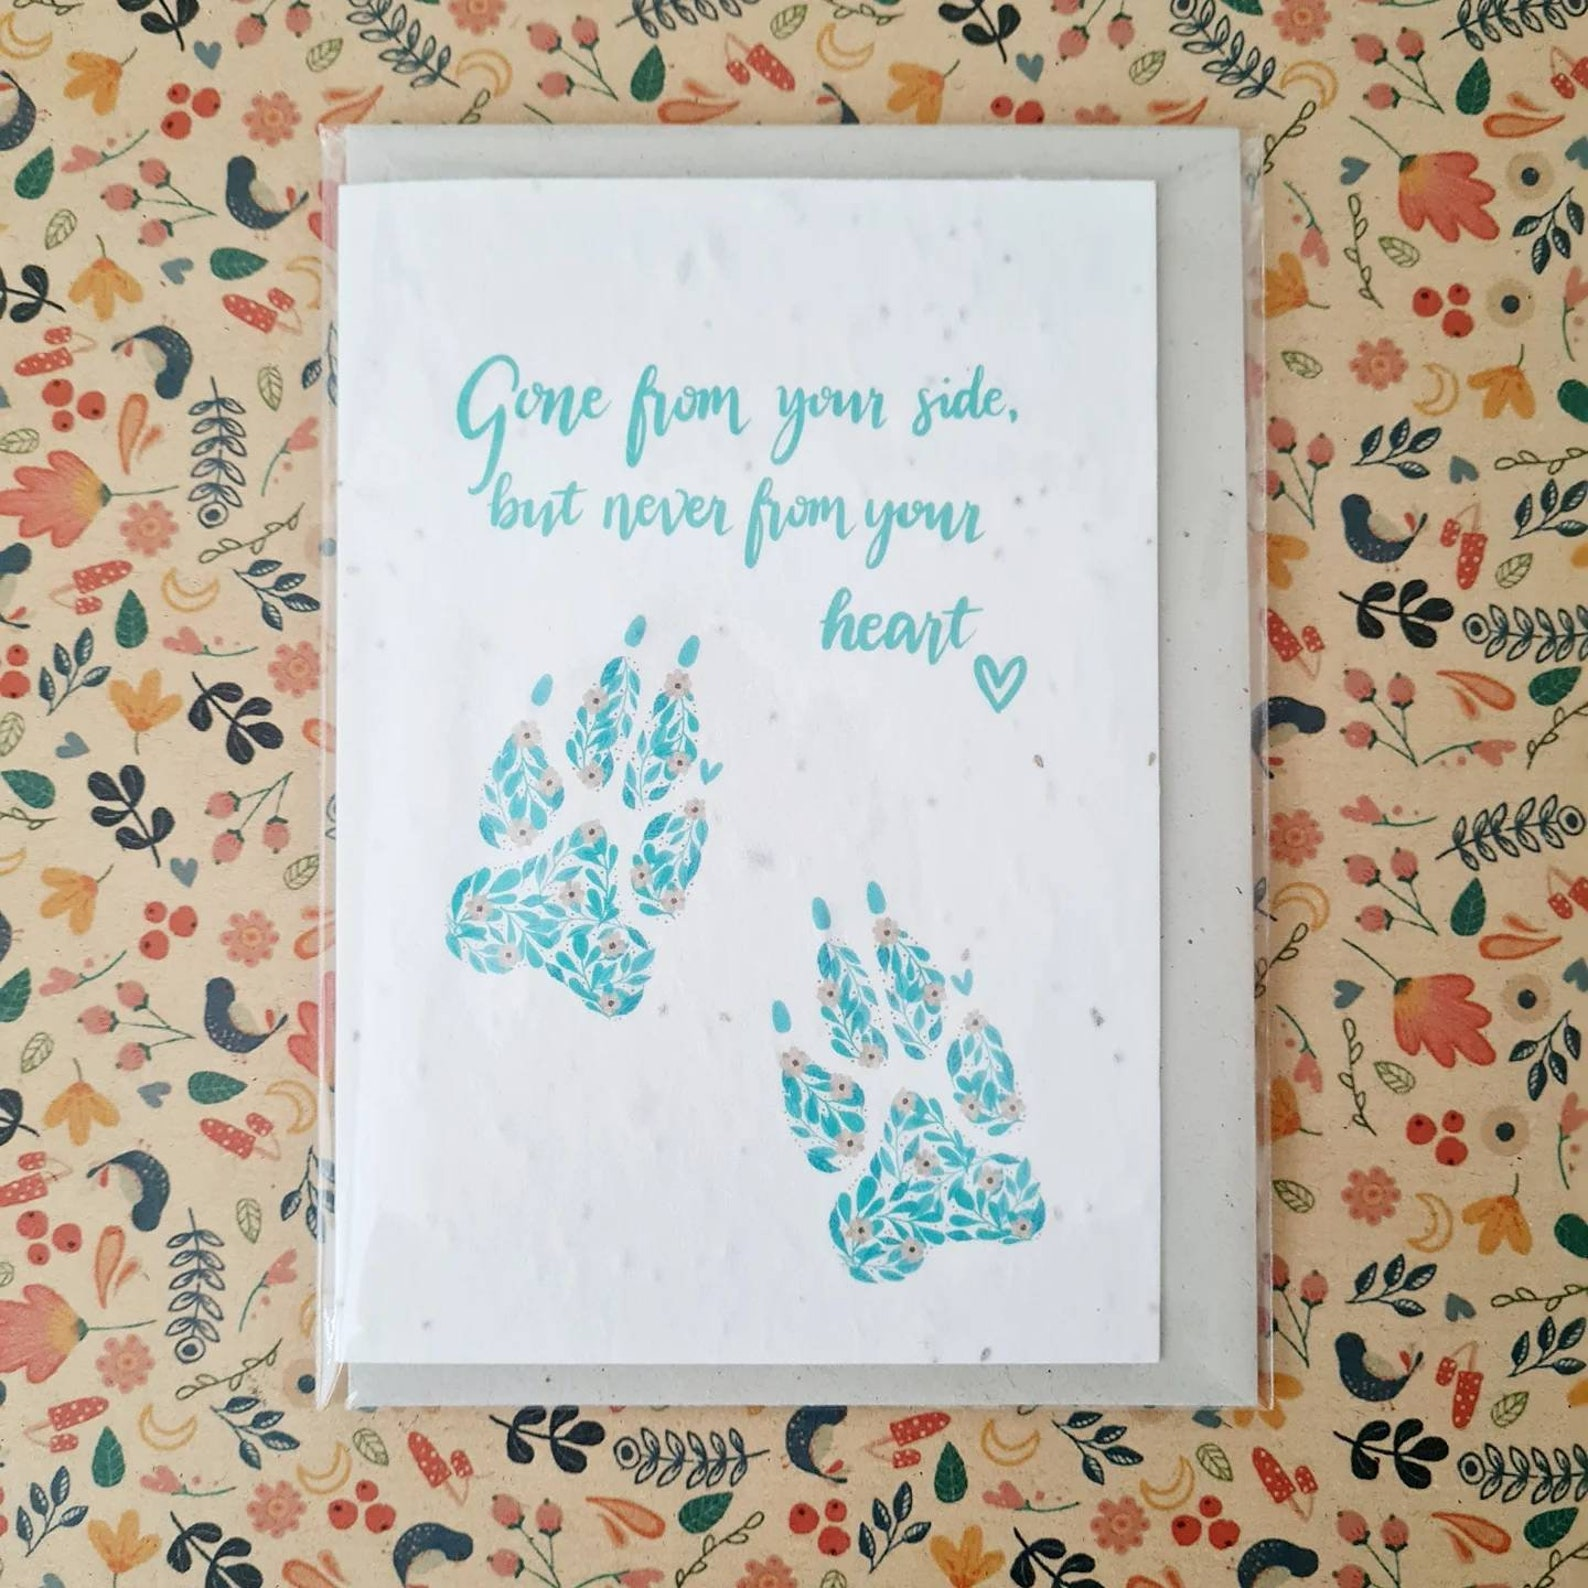 Plantable Wildflower Pet Sympathy Seed Card With Dog Paw Prints 'Gone From Your Side' - Bee and Eco Friendly